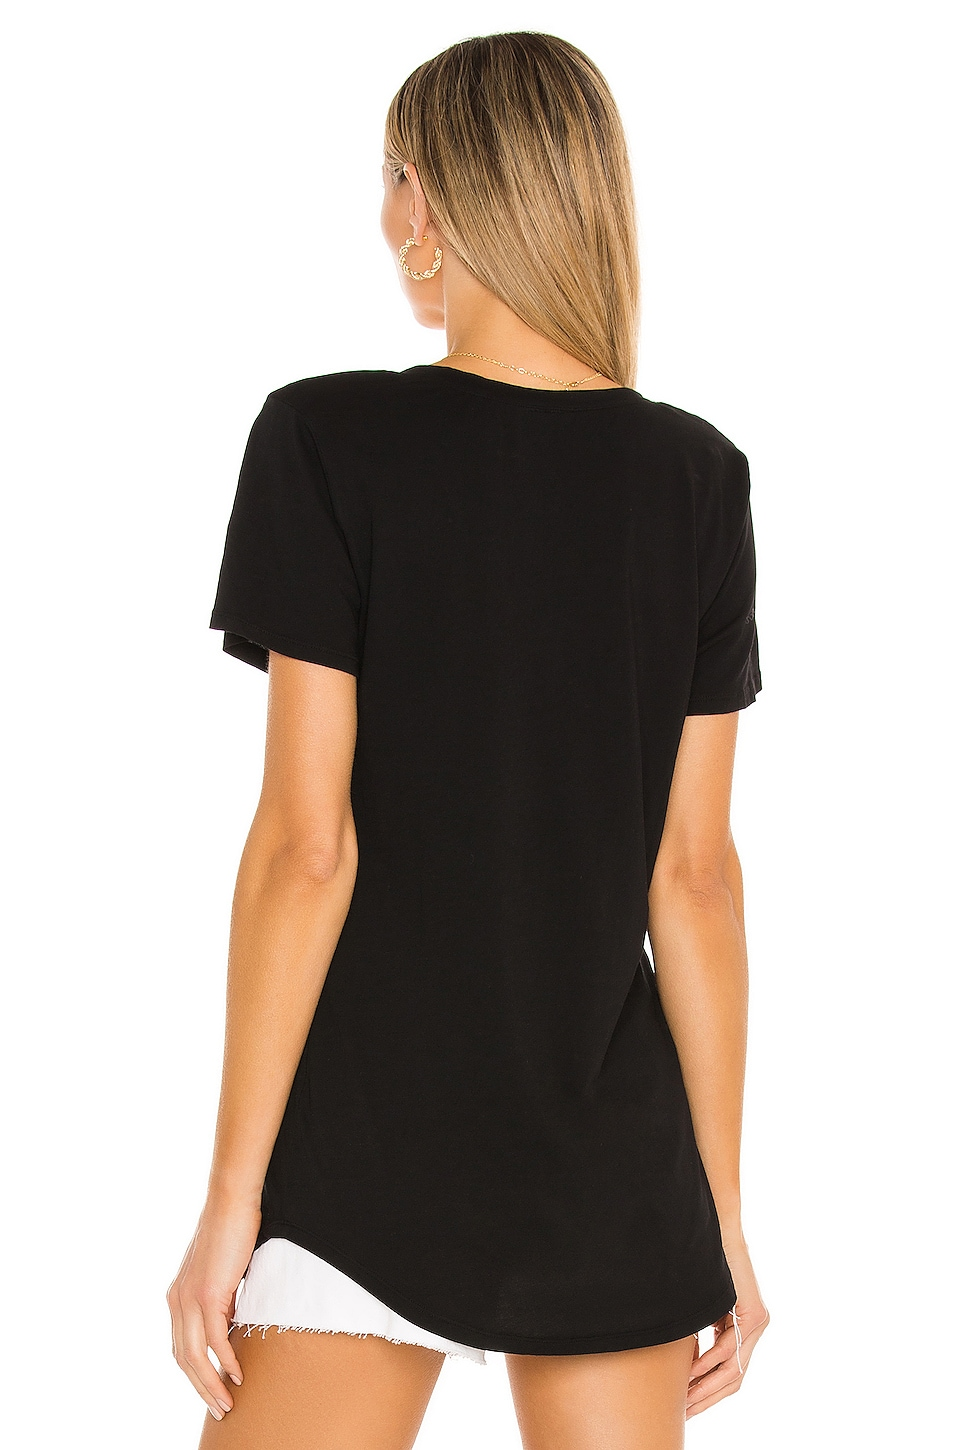 Bobi Lightweight Jersey Pocket Tee in Black